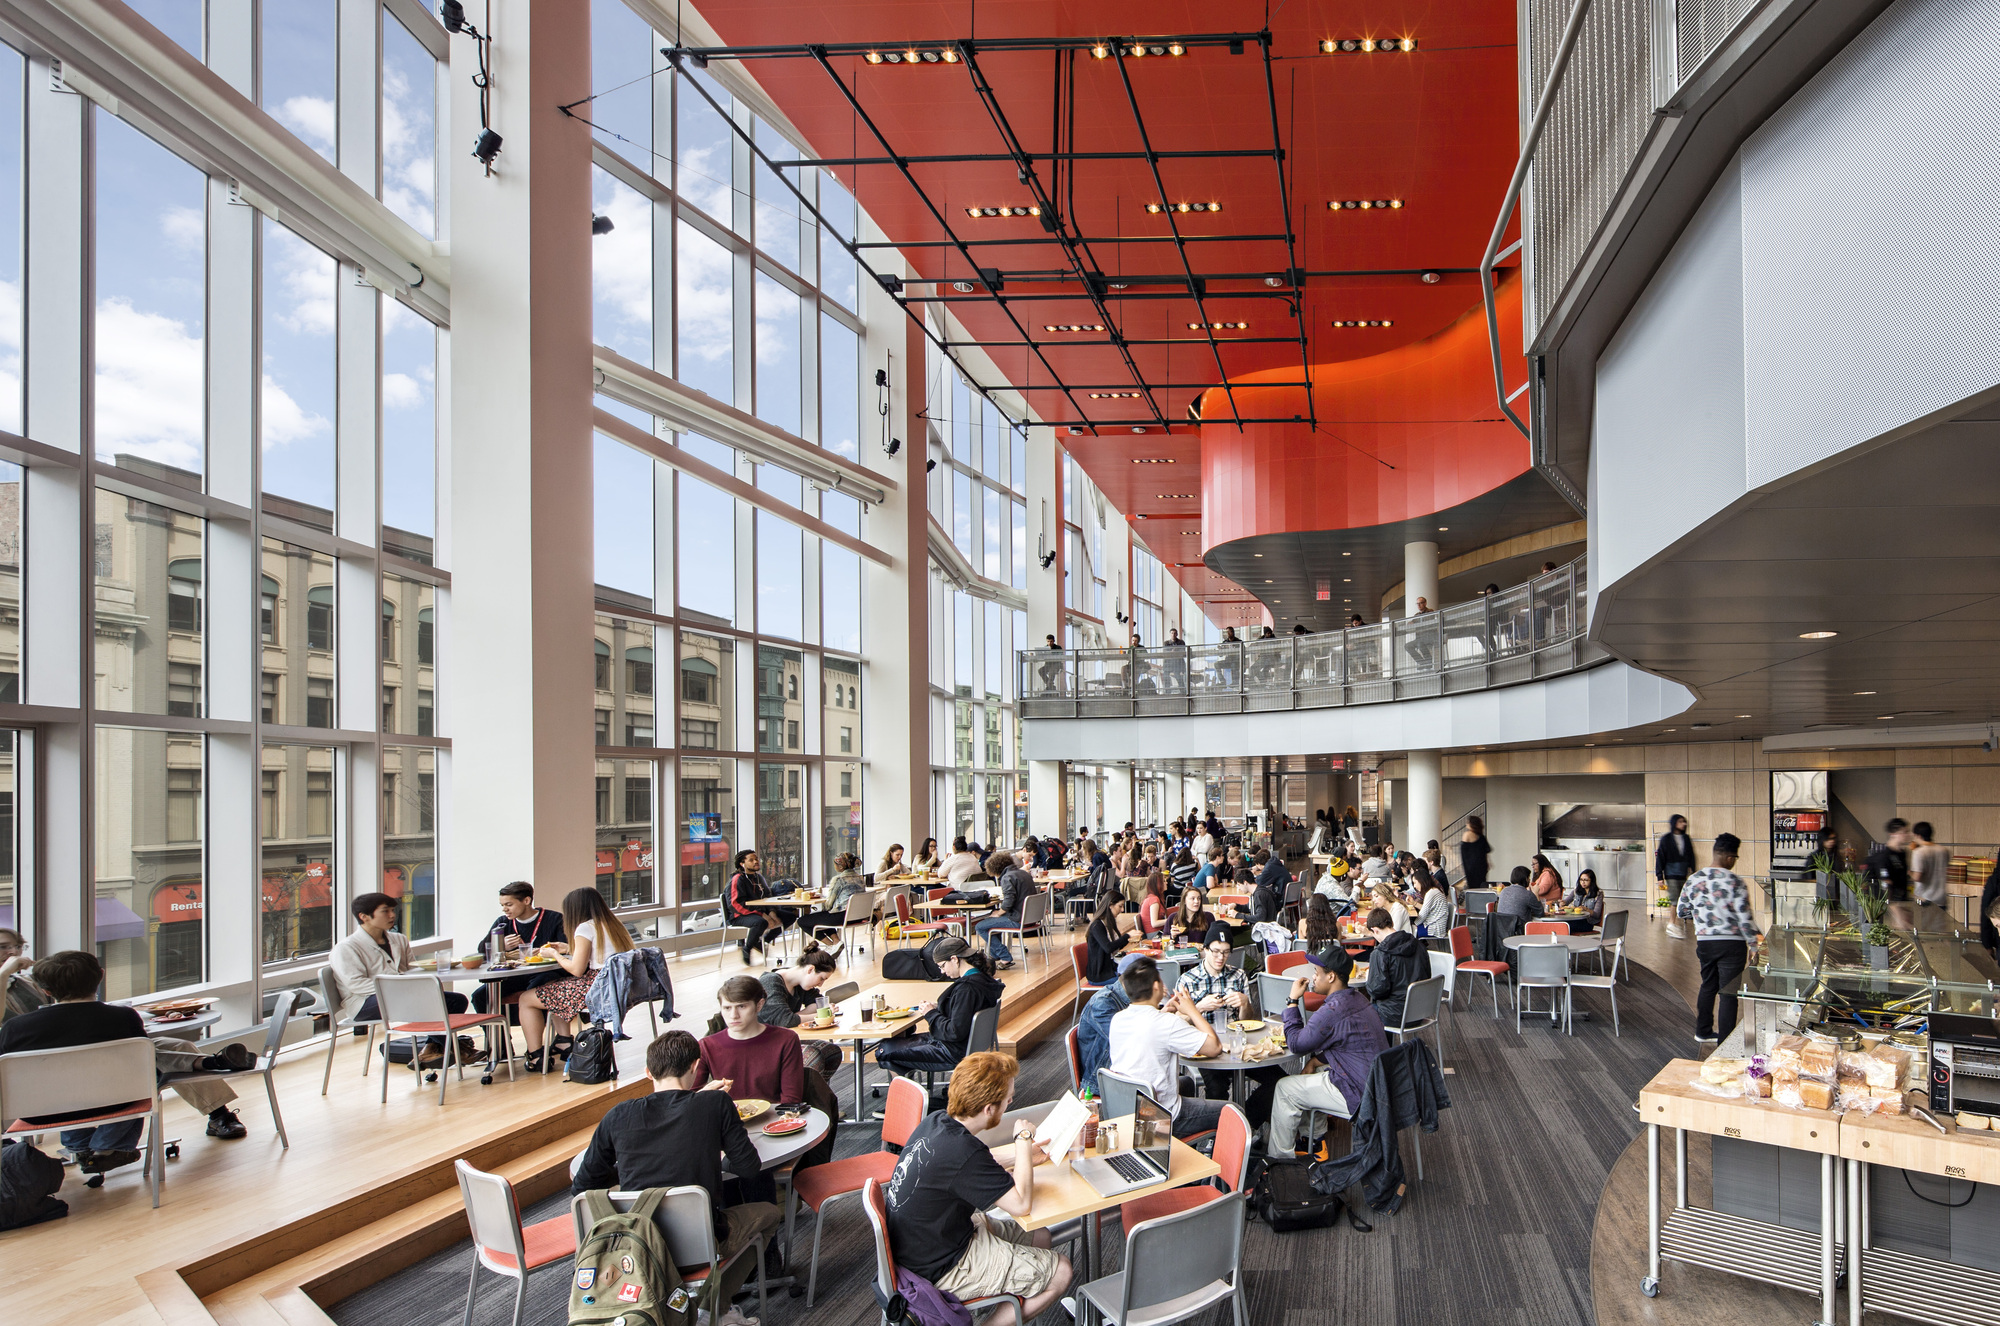 9 Projects Selected for AIA Education Facility Design